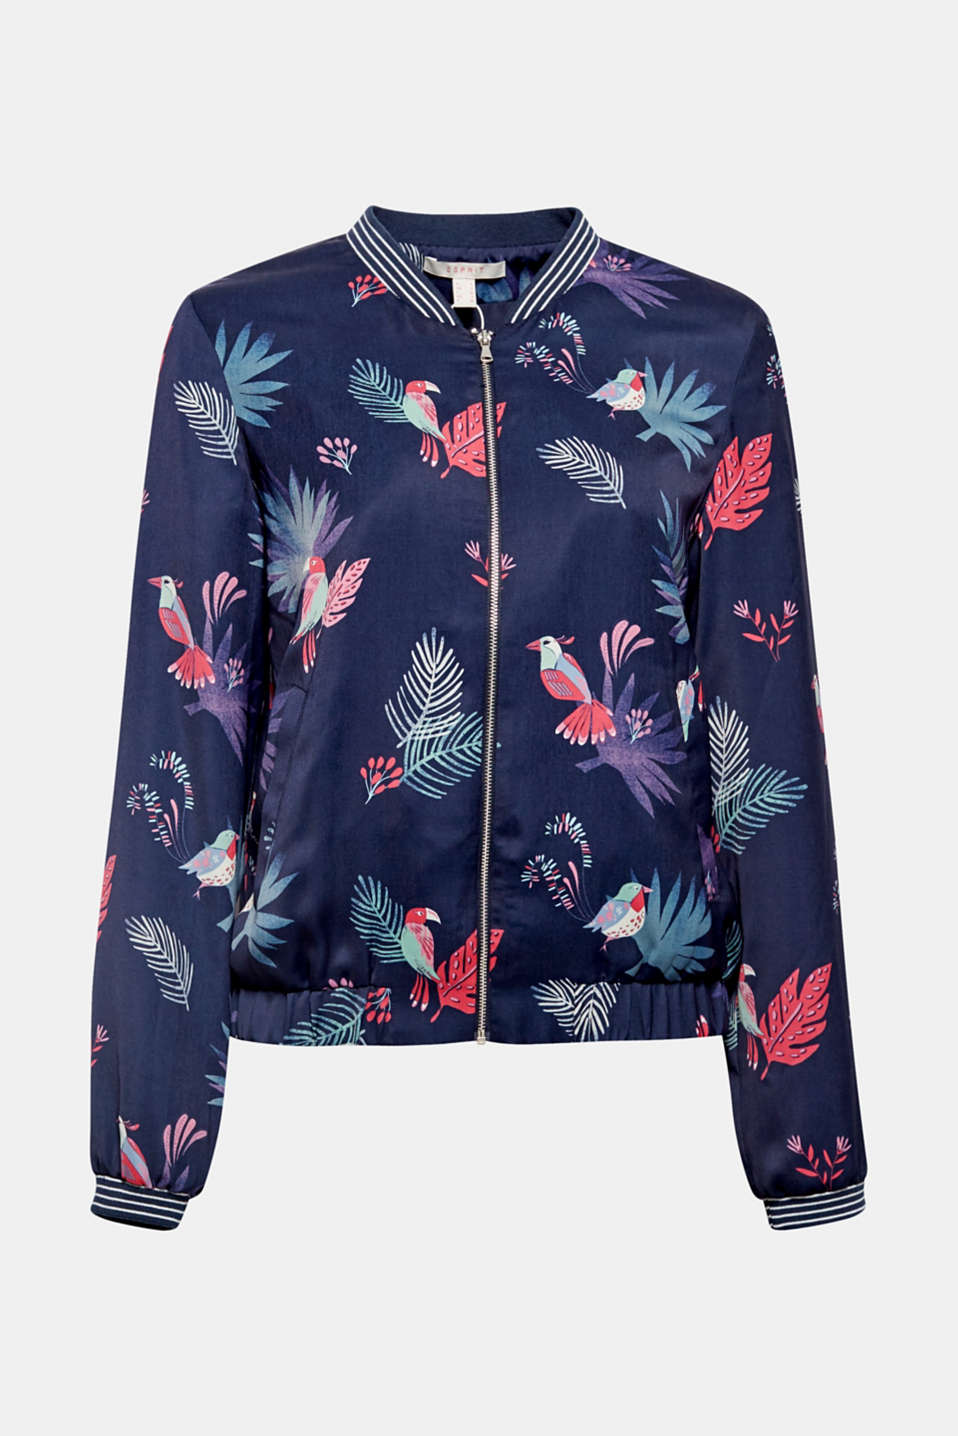 The bomber jacket with a summer look: the colourful tropical print and striped ribbed cuffs and waistband add great new twists!